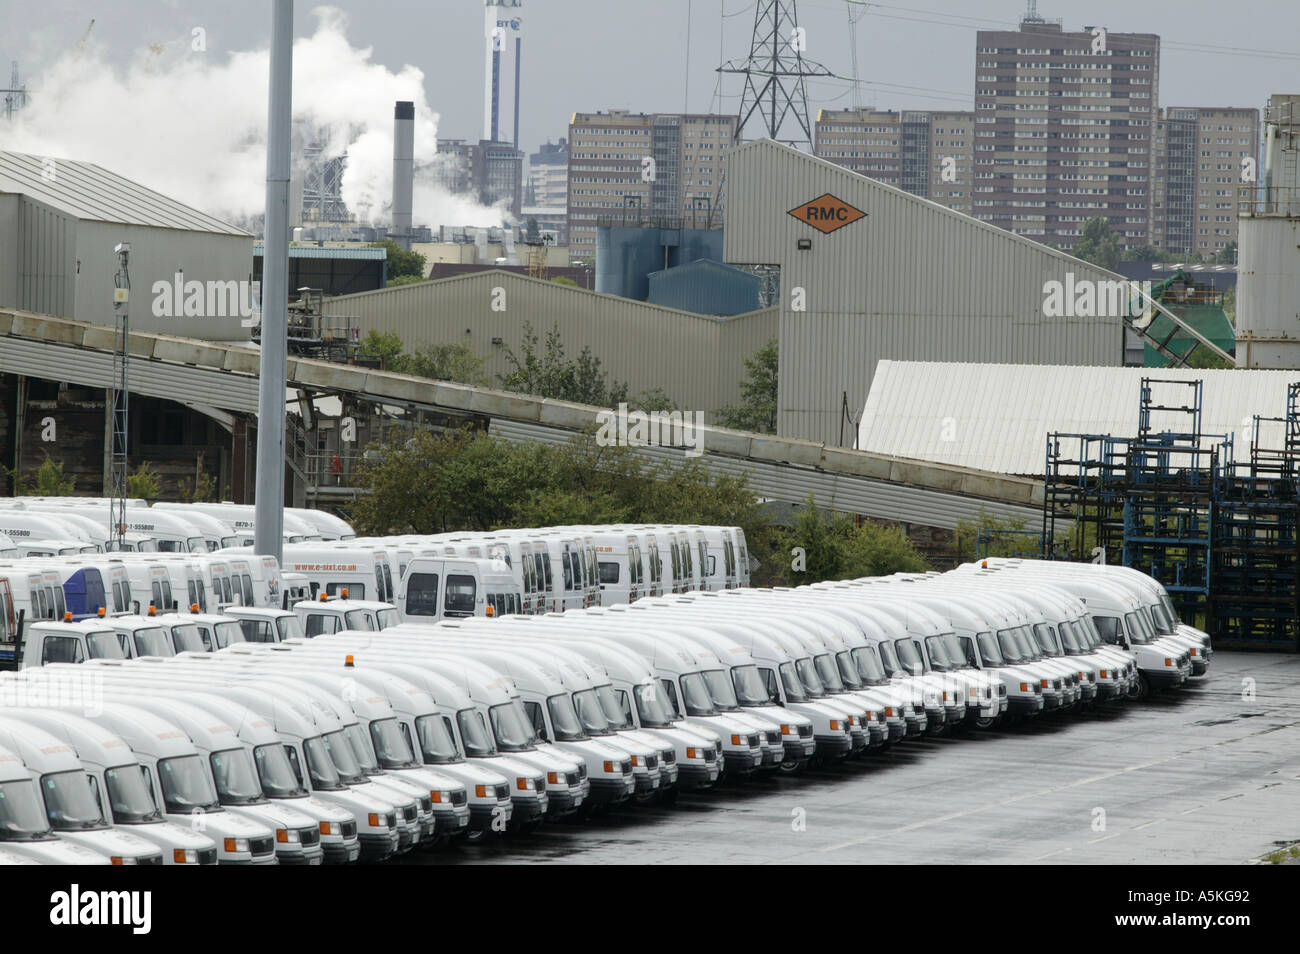 Brand new LDV vans parked in a parking lot at the LDV factory in Washford Heath Birmingham UK - Stock Image